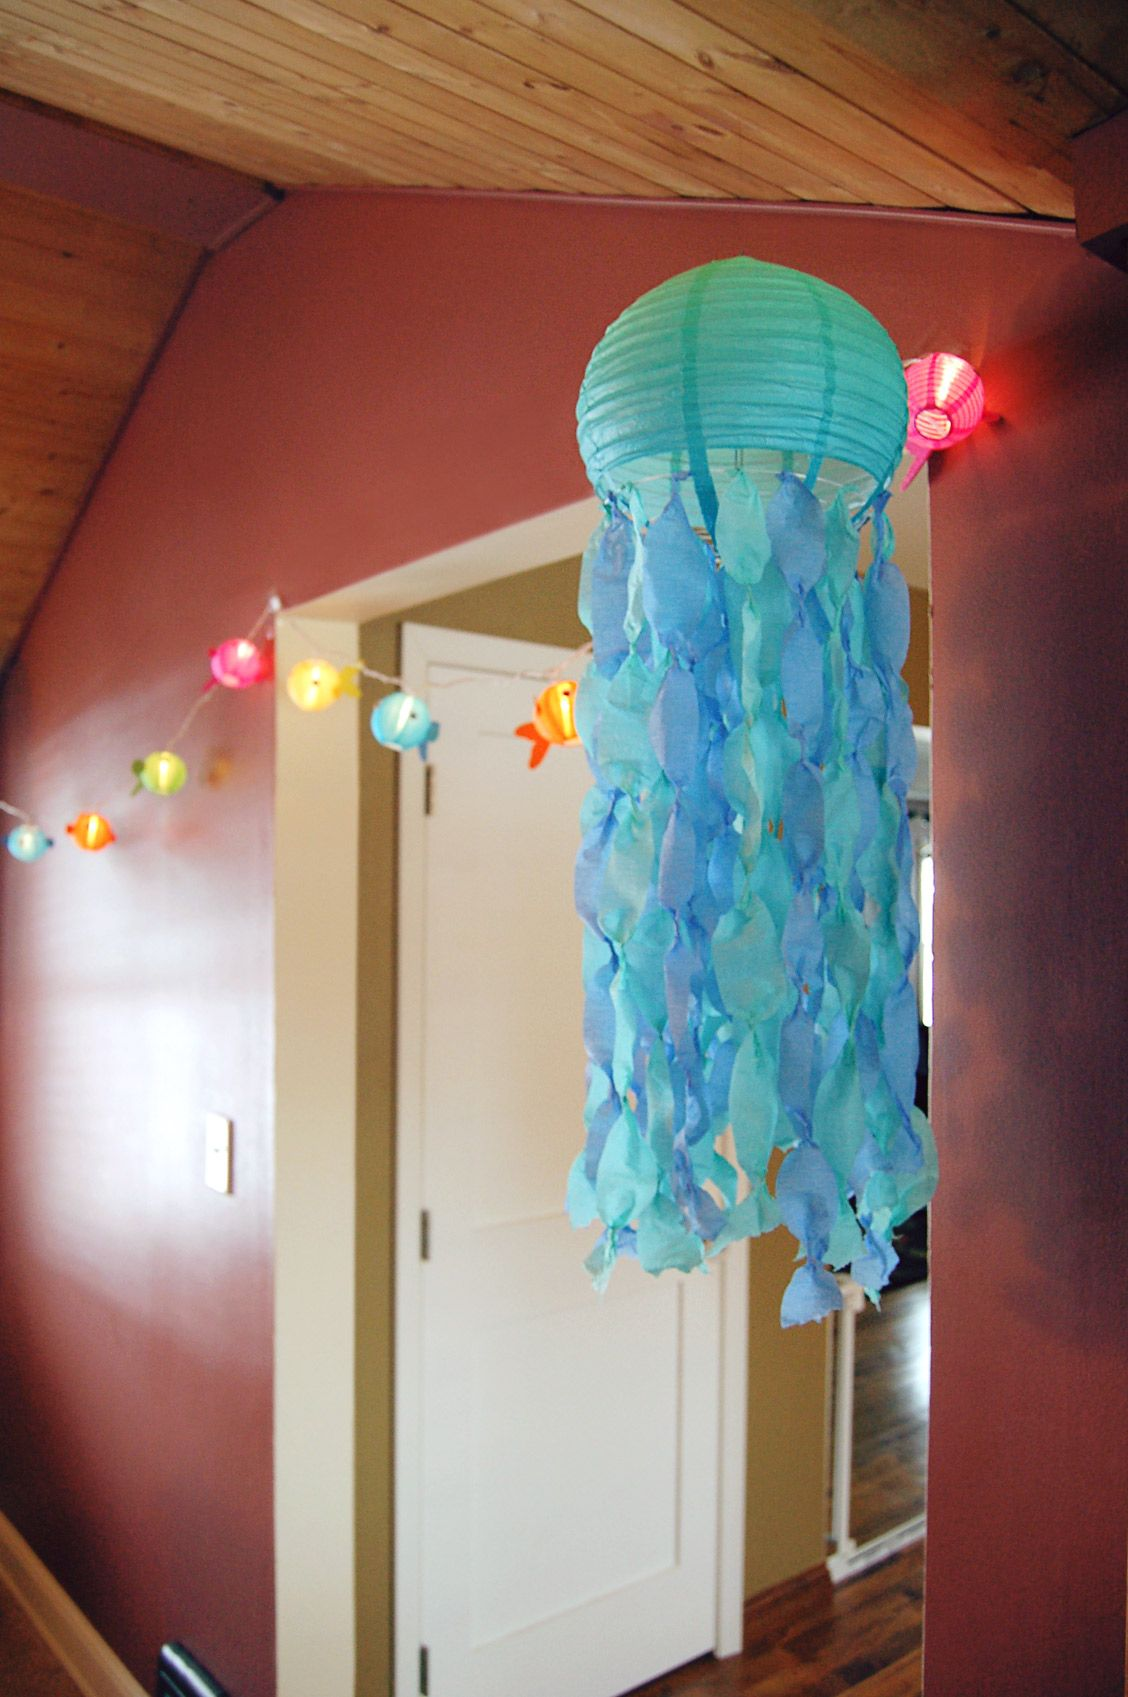 Paper Lantern Jellyfish Unique Jellyfish Lanterns #birthdayexpre…  Parties Mermaid  Under The Review